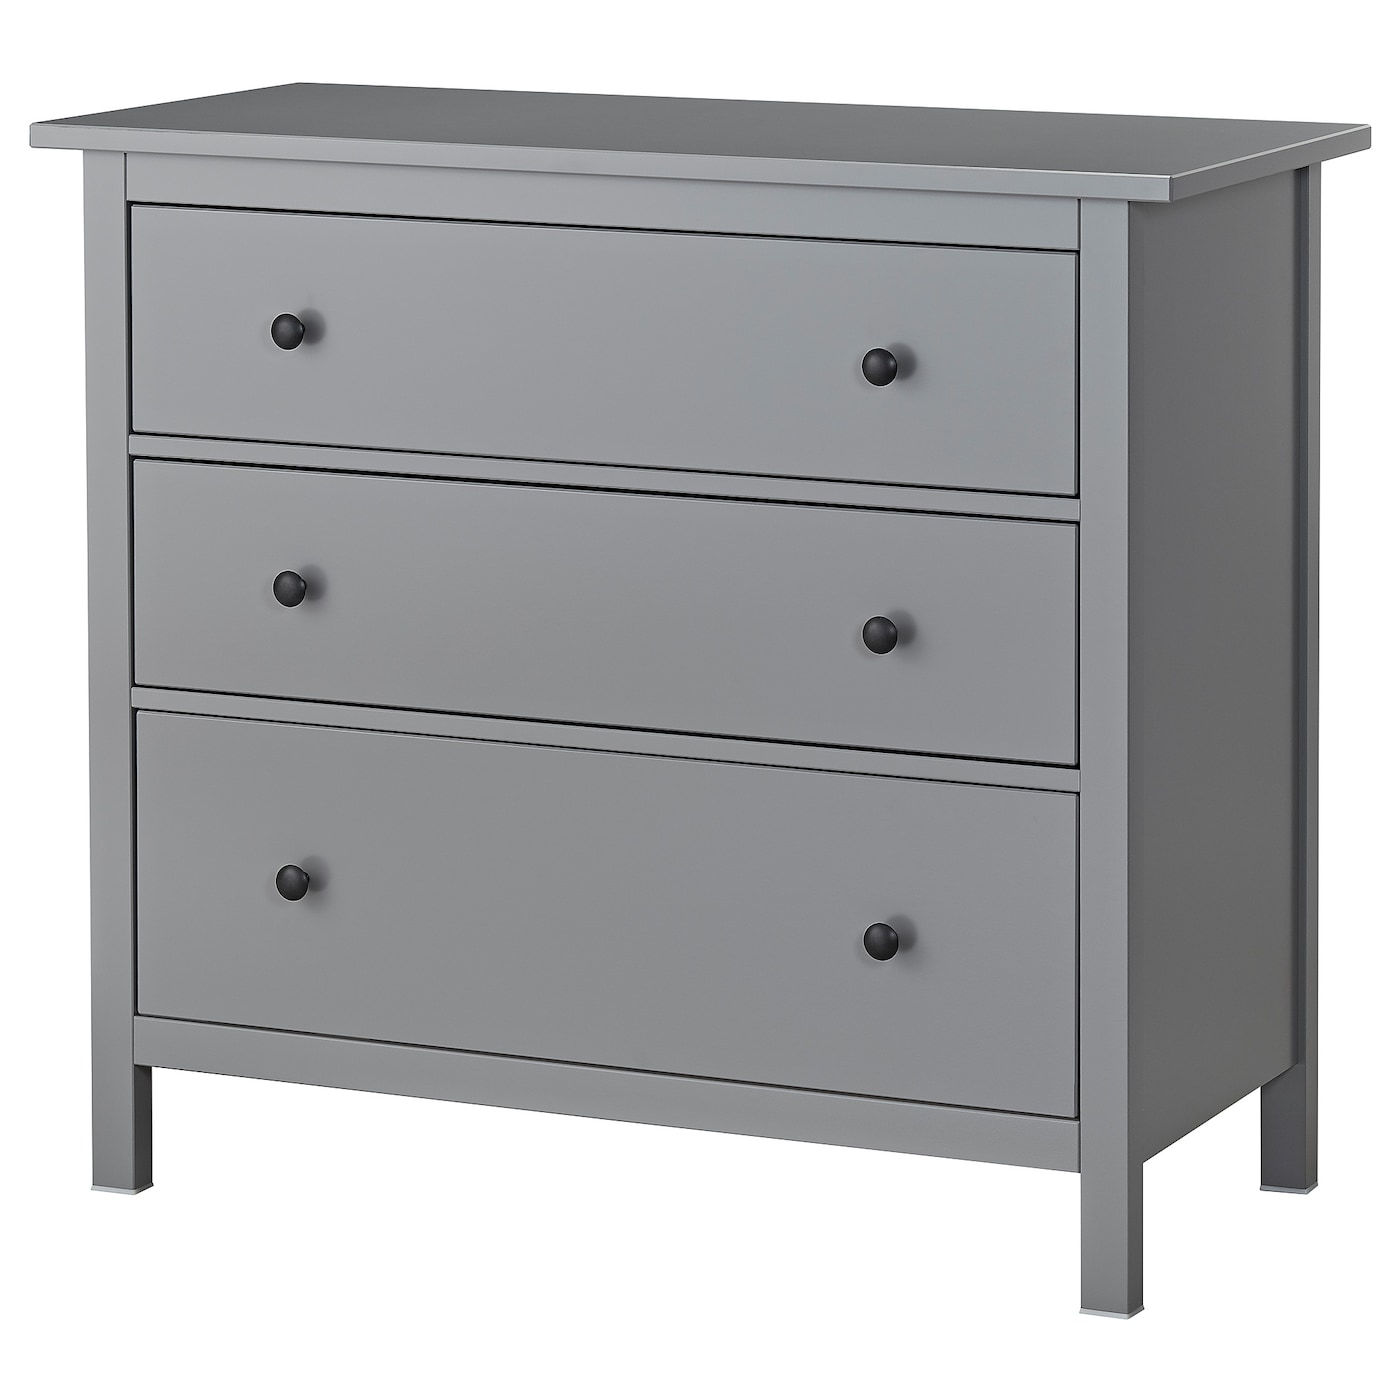 hemnes chest of 3 drawers grey 108x96 cm ikea. Black Bedroom Furniture Sets. Home Design Ideas